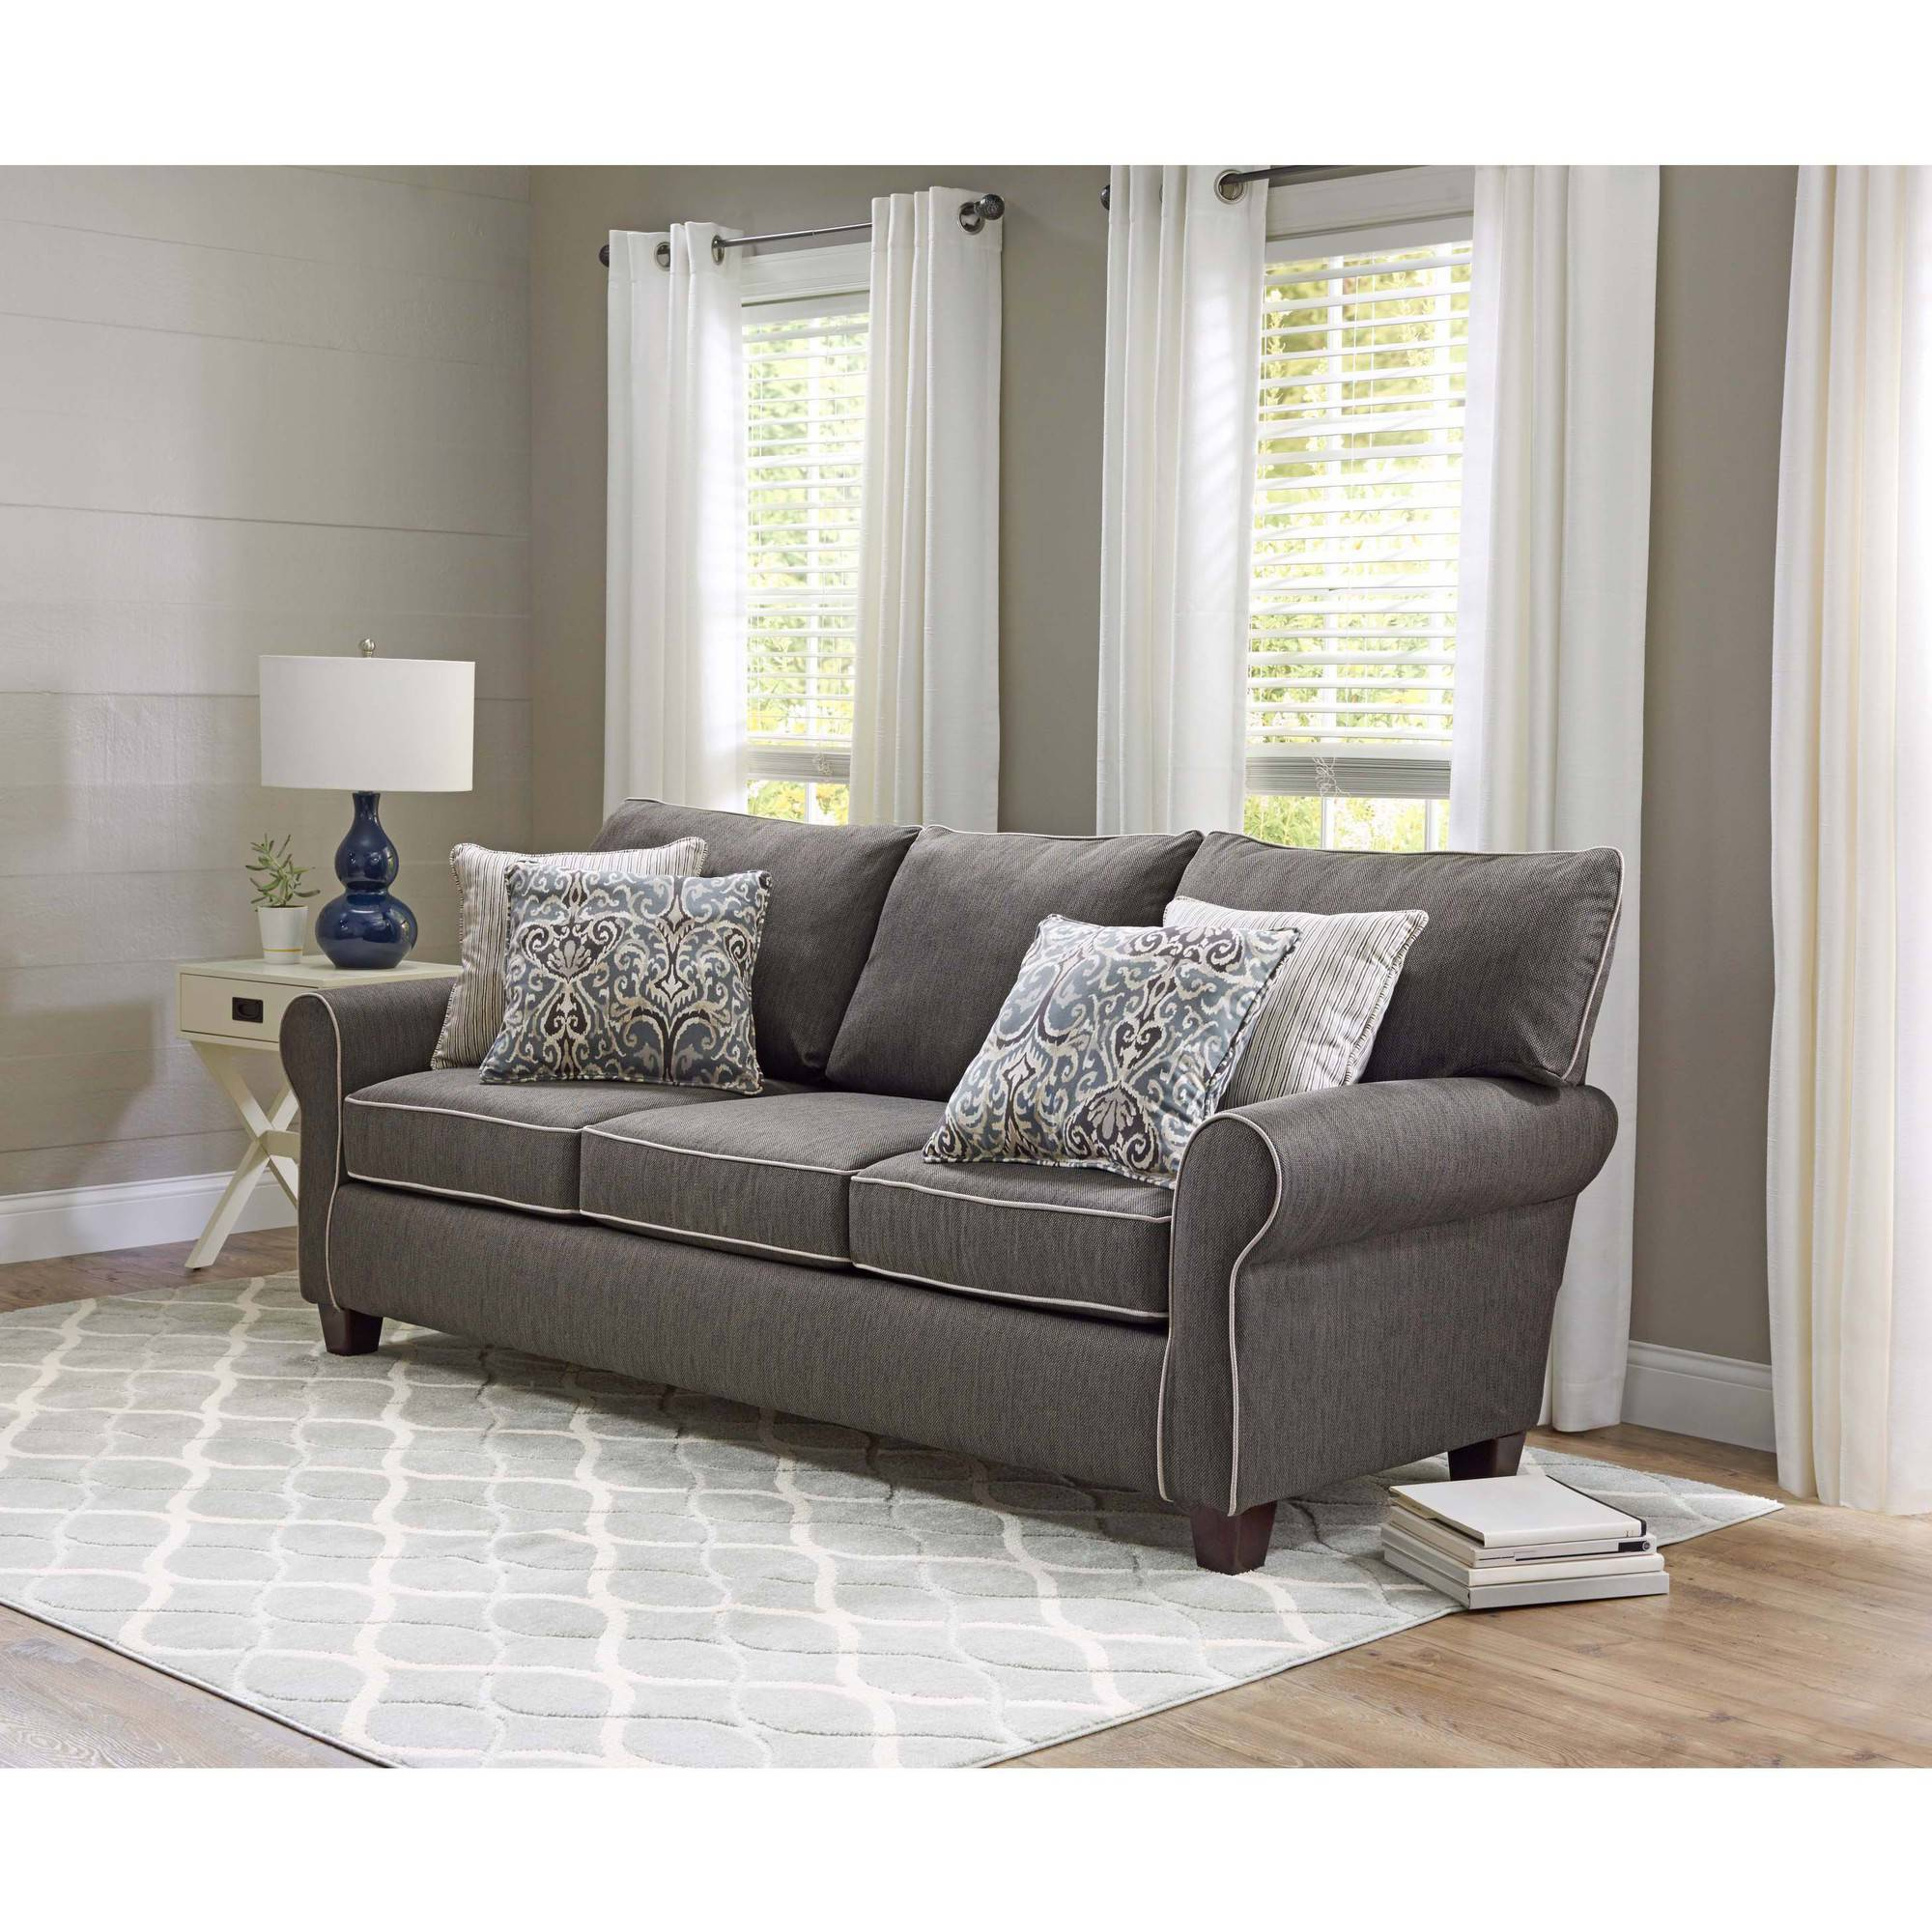 Etonnant Better Homes And Gardens Clayborne Sofa   Walmart.com